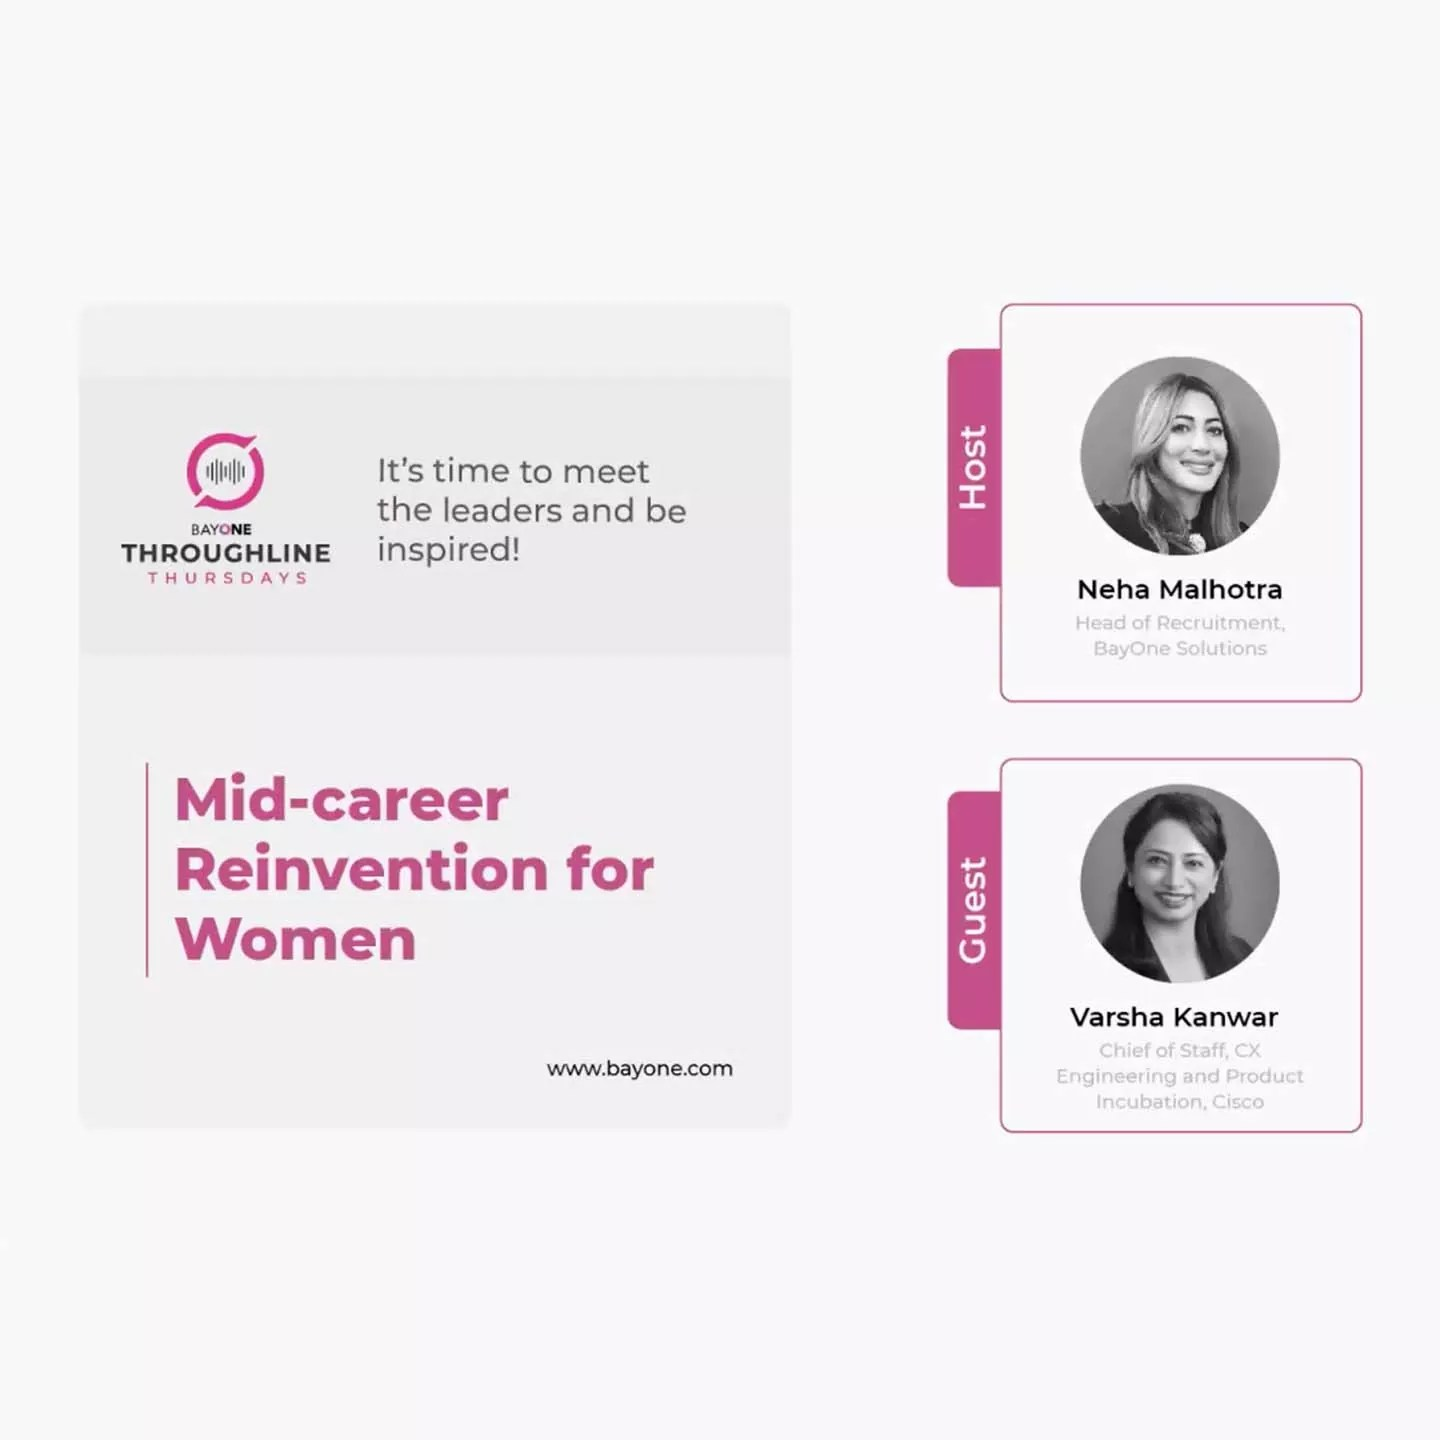 Mid-career Reinvention for Women